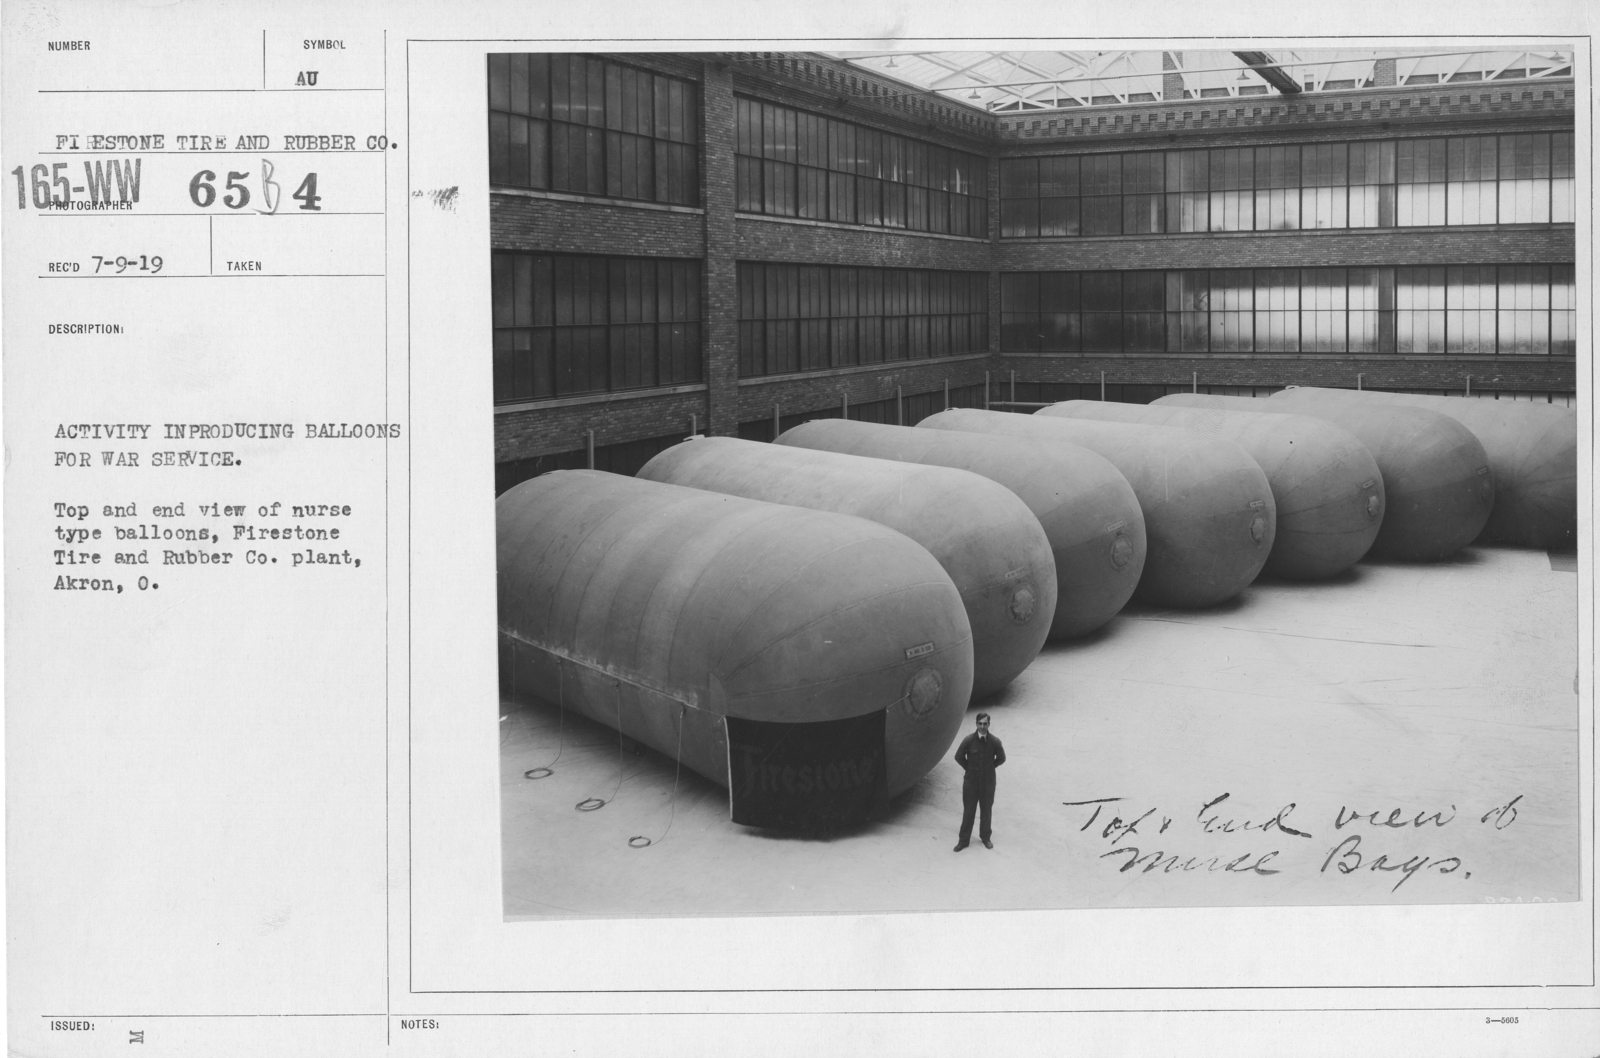 Balloons - Firestone Tire & Rubber Co. - Activity in producing balloons for war service. Top and end view of nurse type balloons, Firestone Tire and Rubber Co. plant, Akron, O